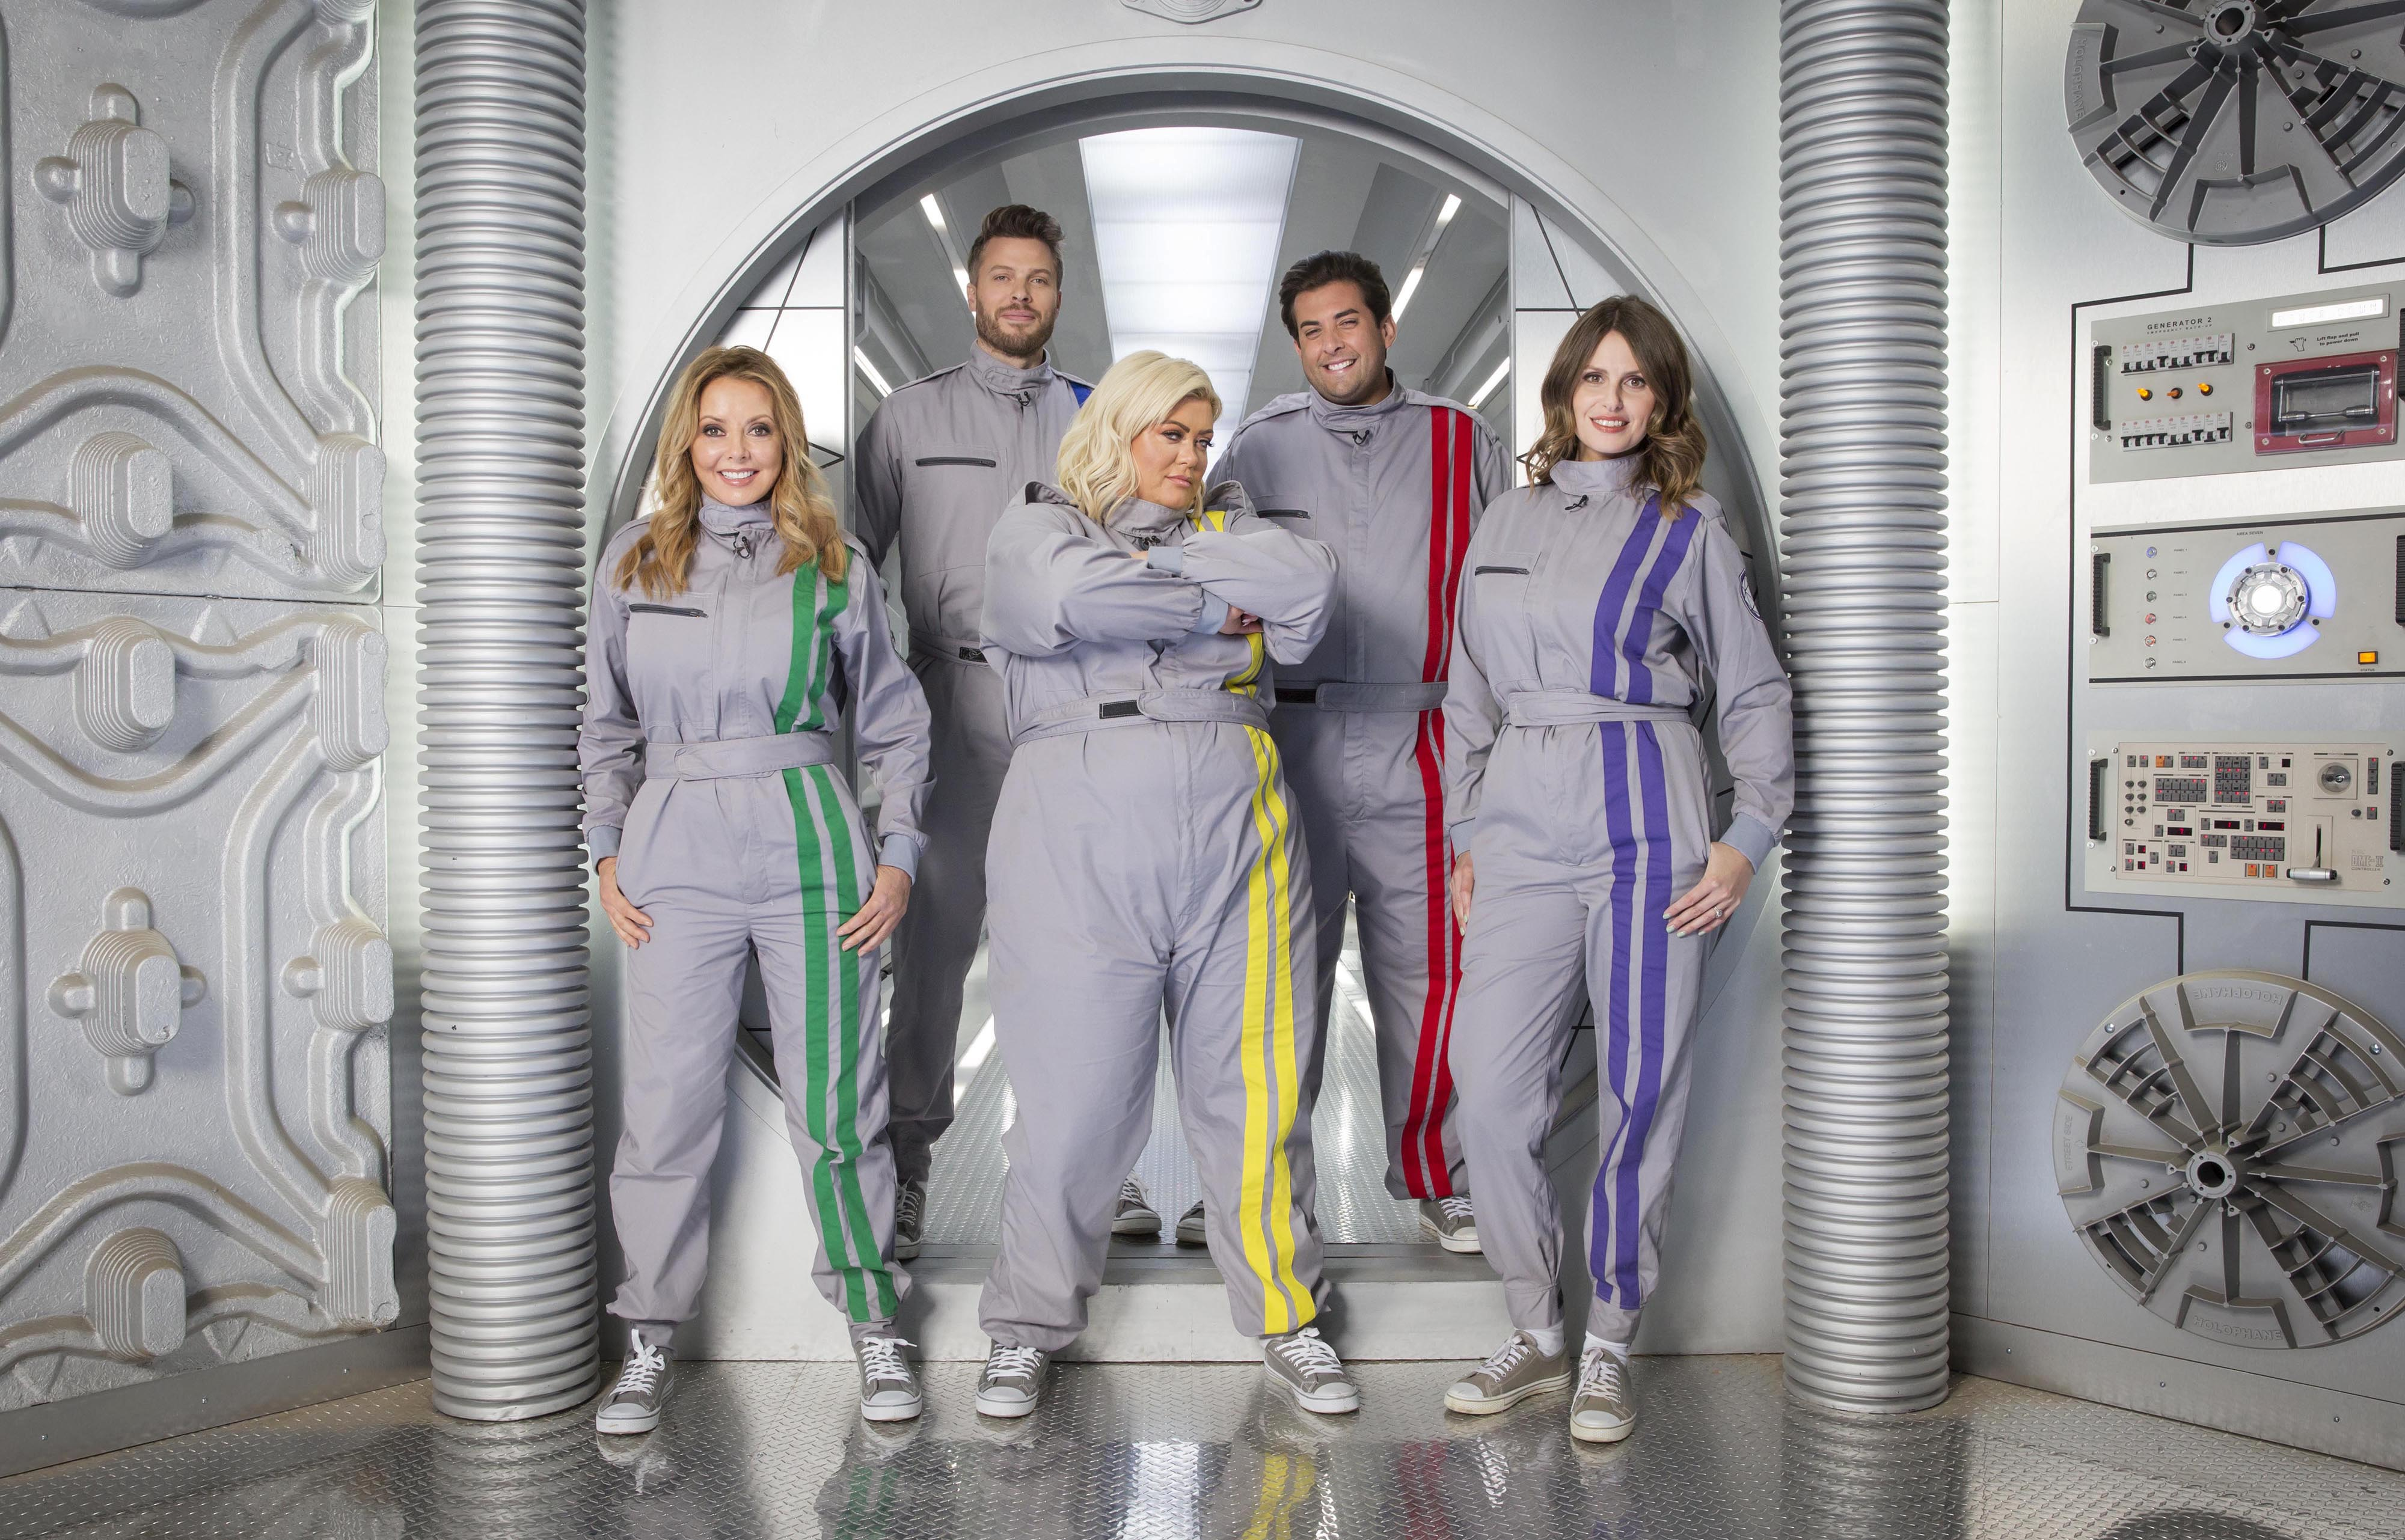 From left: Carol Vorderman, Rick Edwards, Gemma Collins, James Argent and Ellie Taylor.